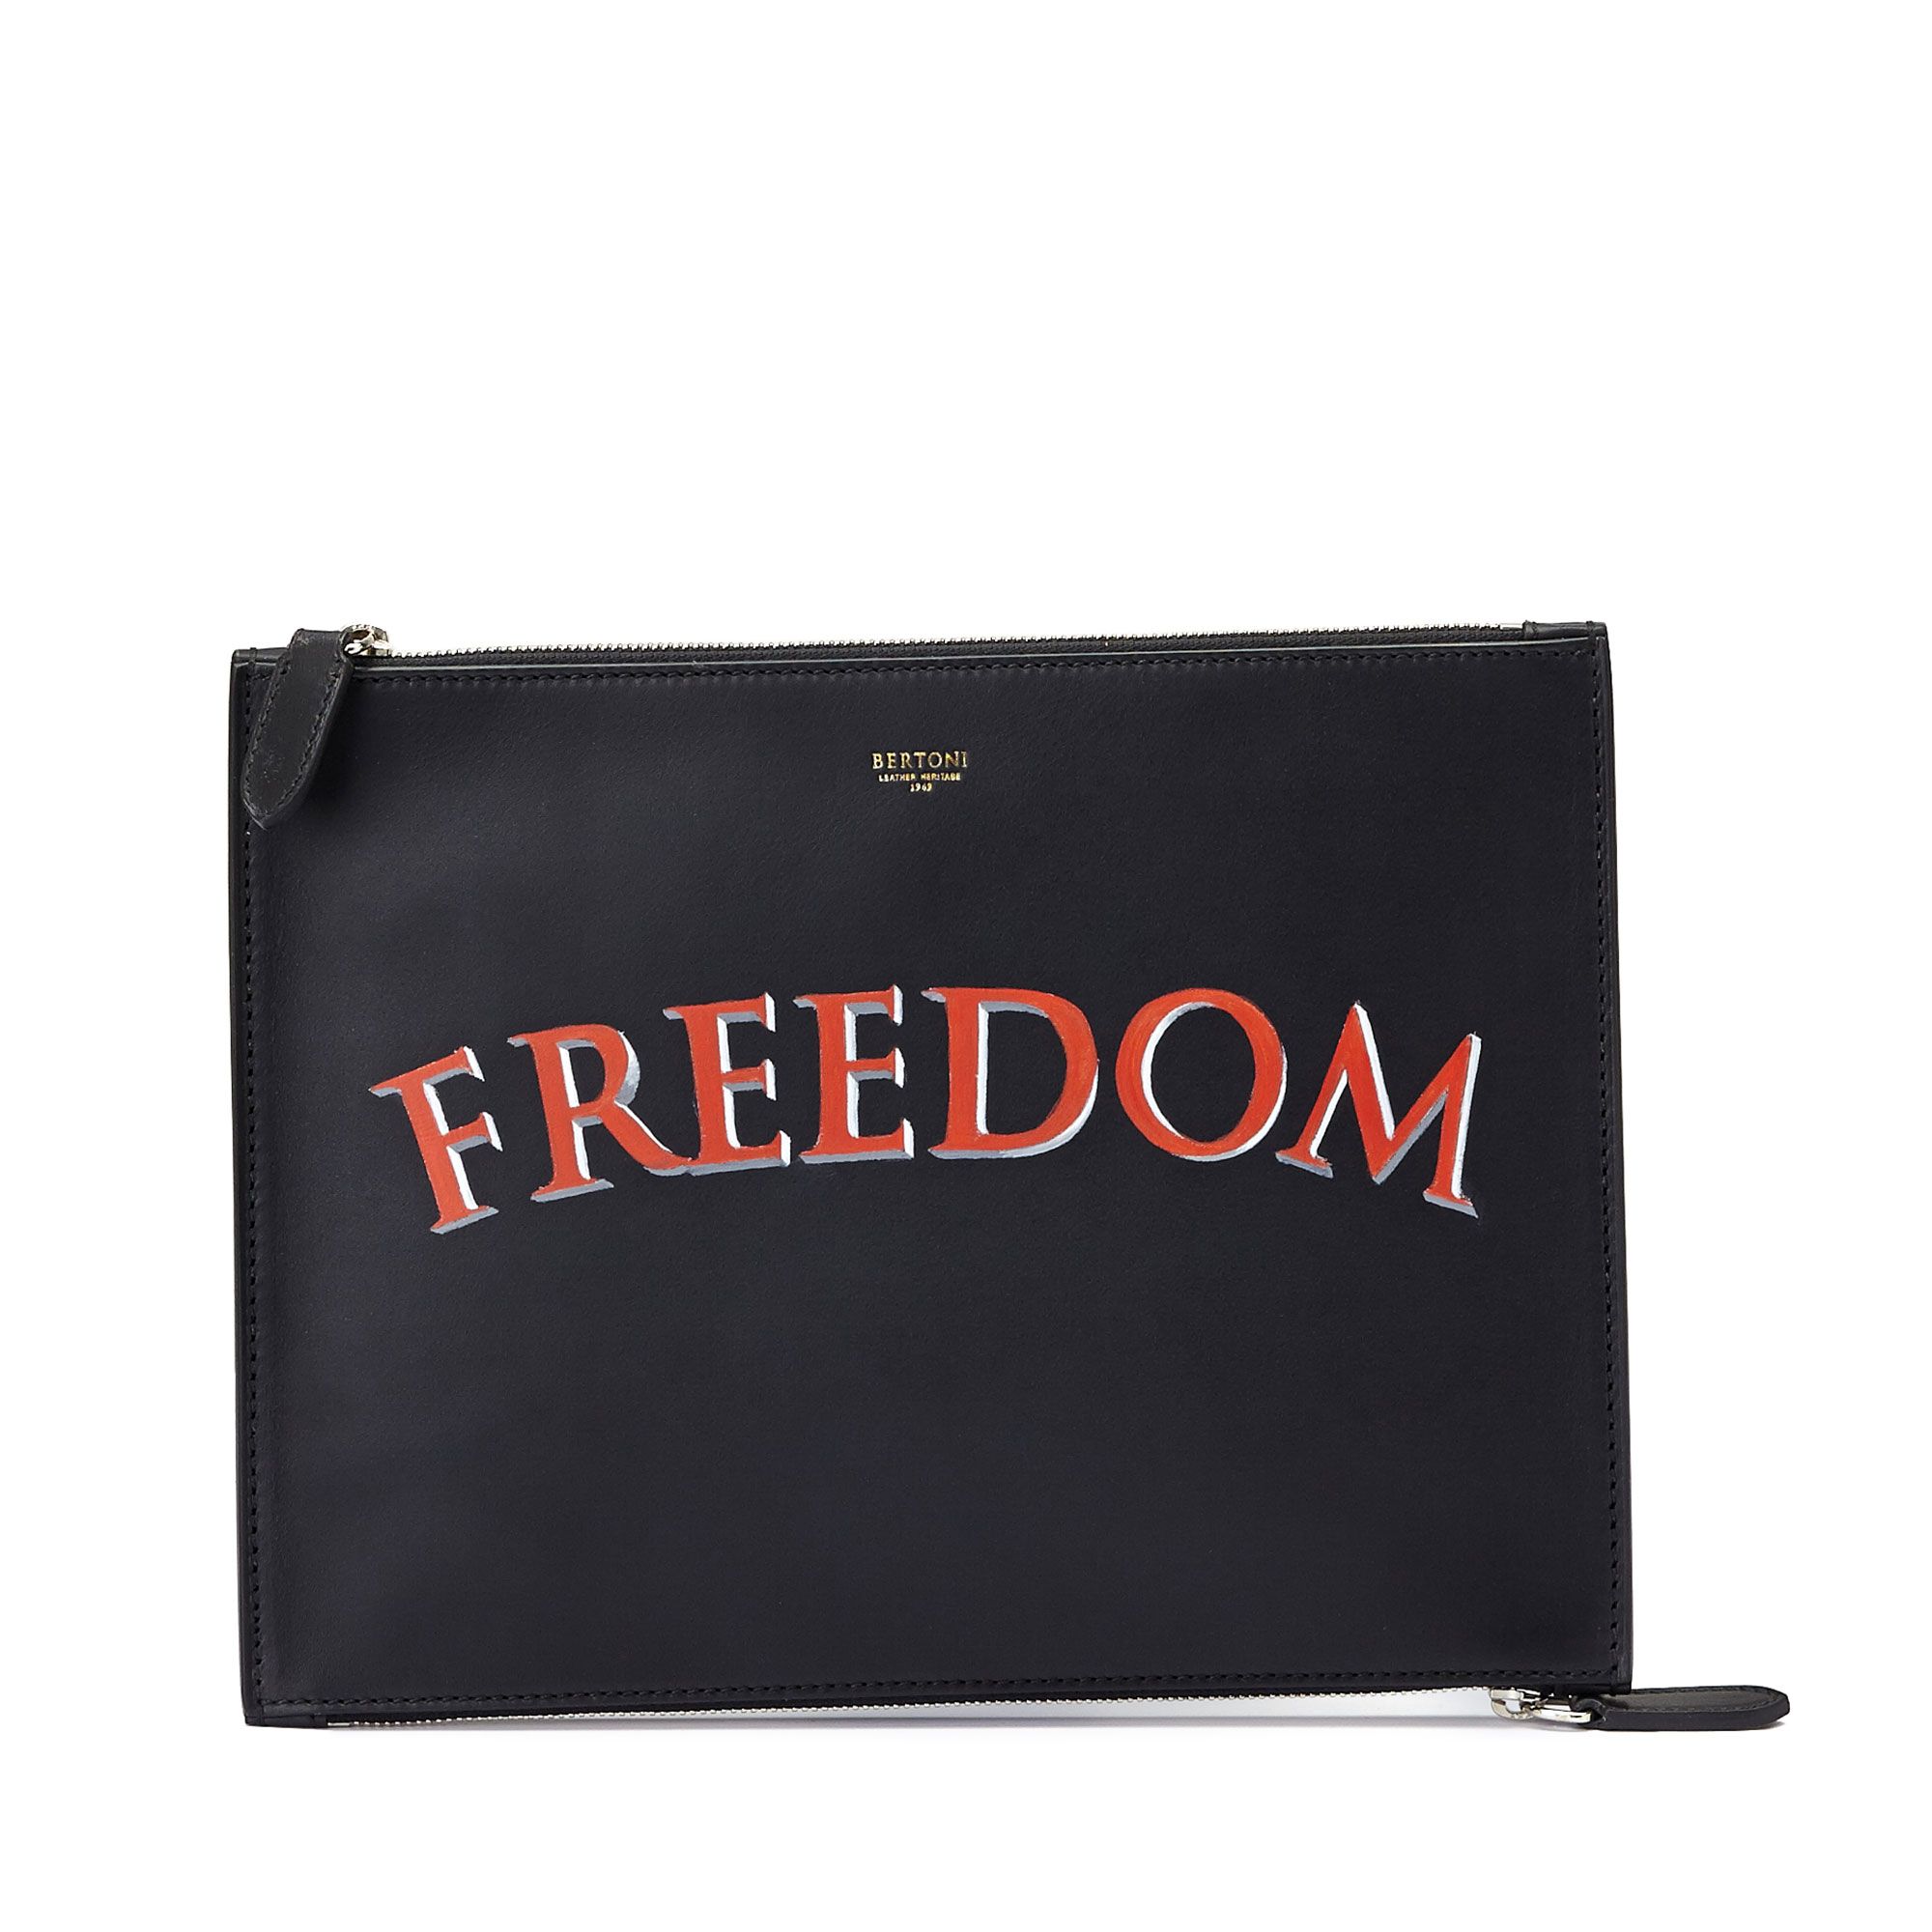 The black freedom french calf Zip Pouch by Bertoni 1949 01